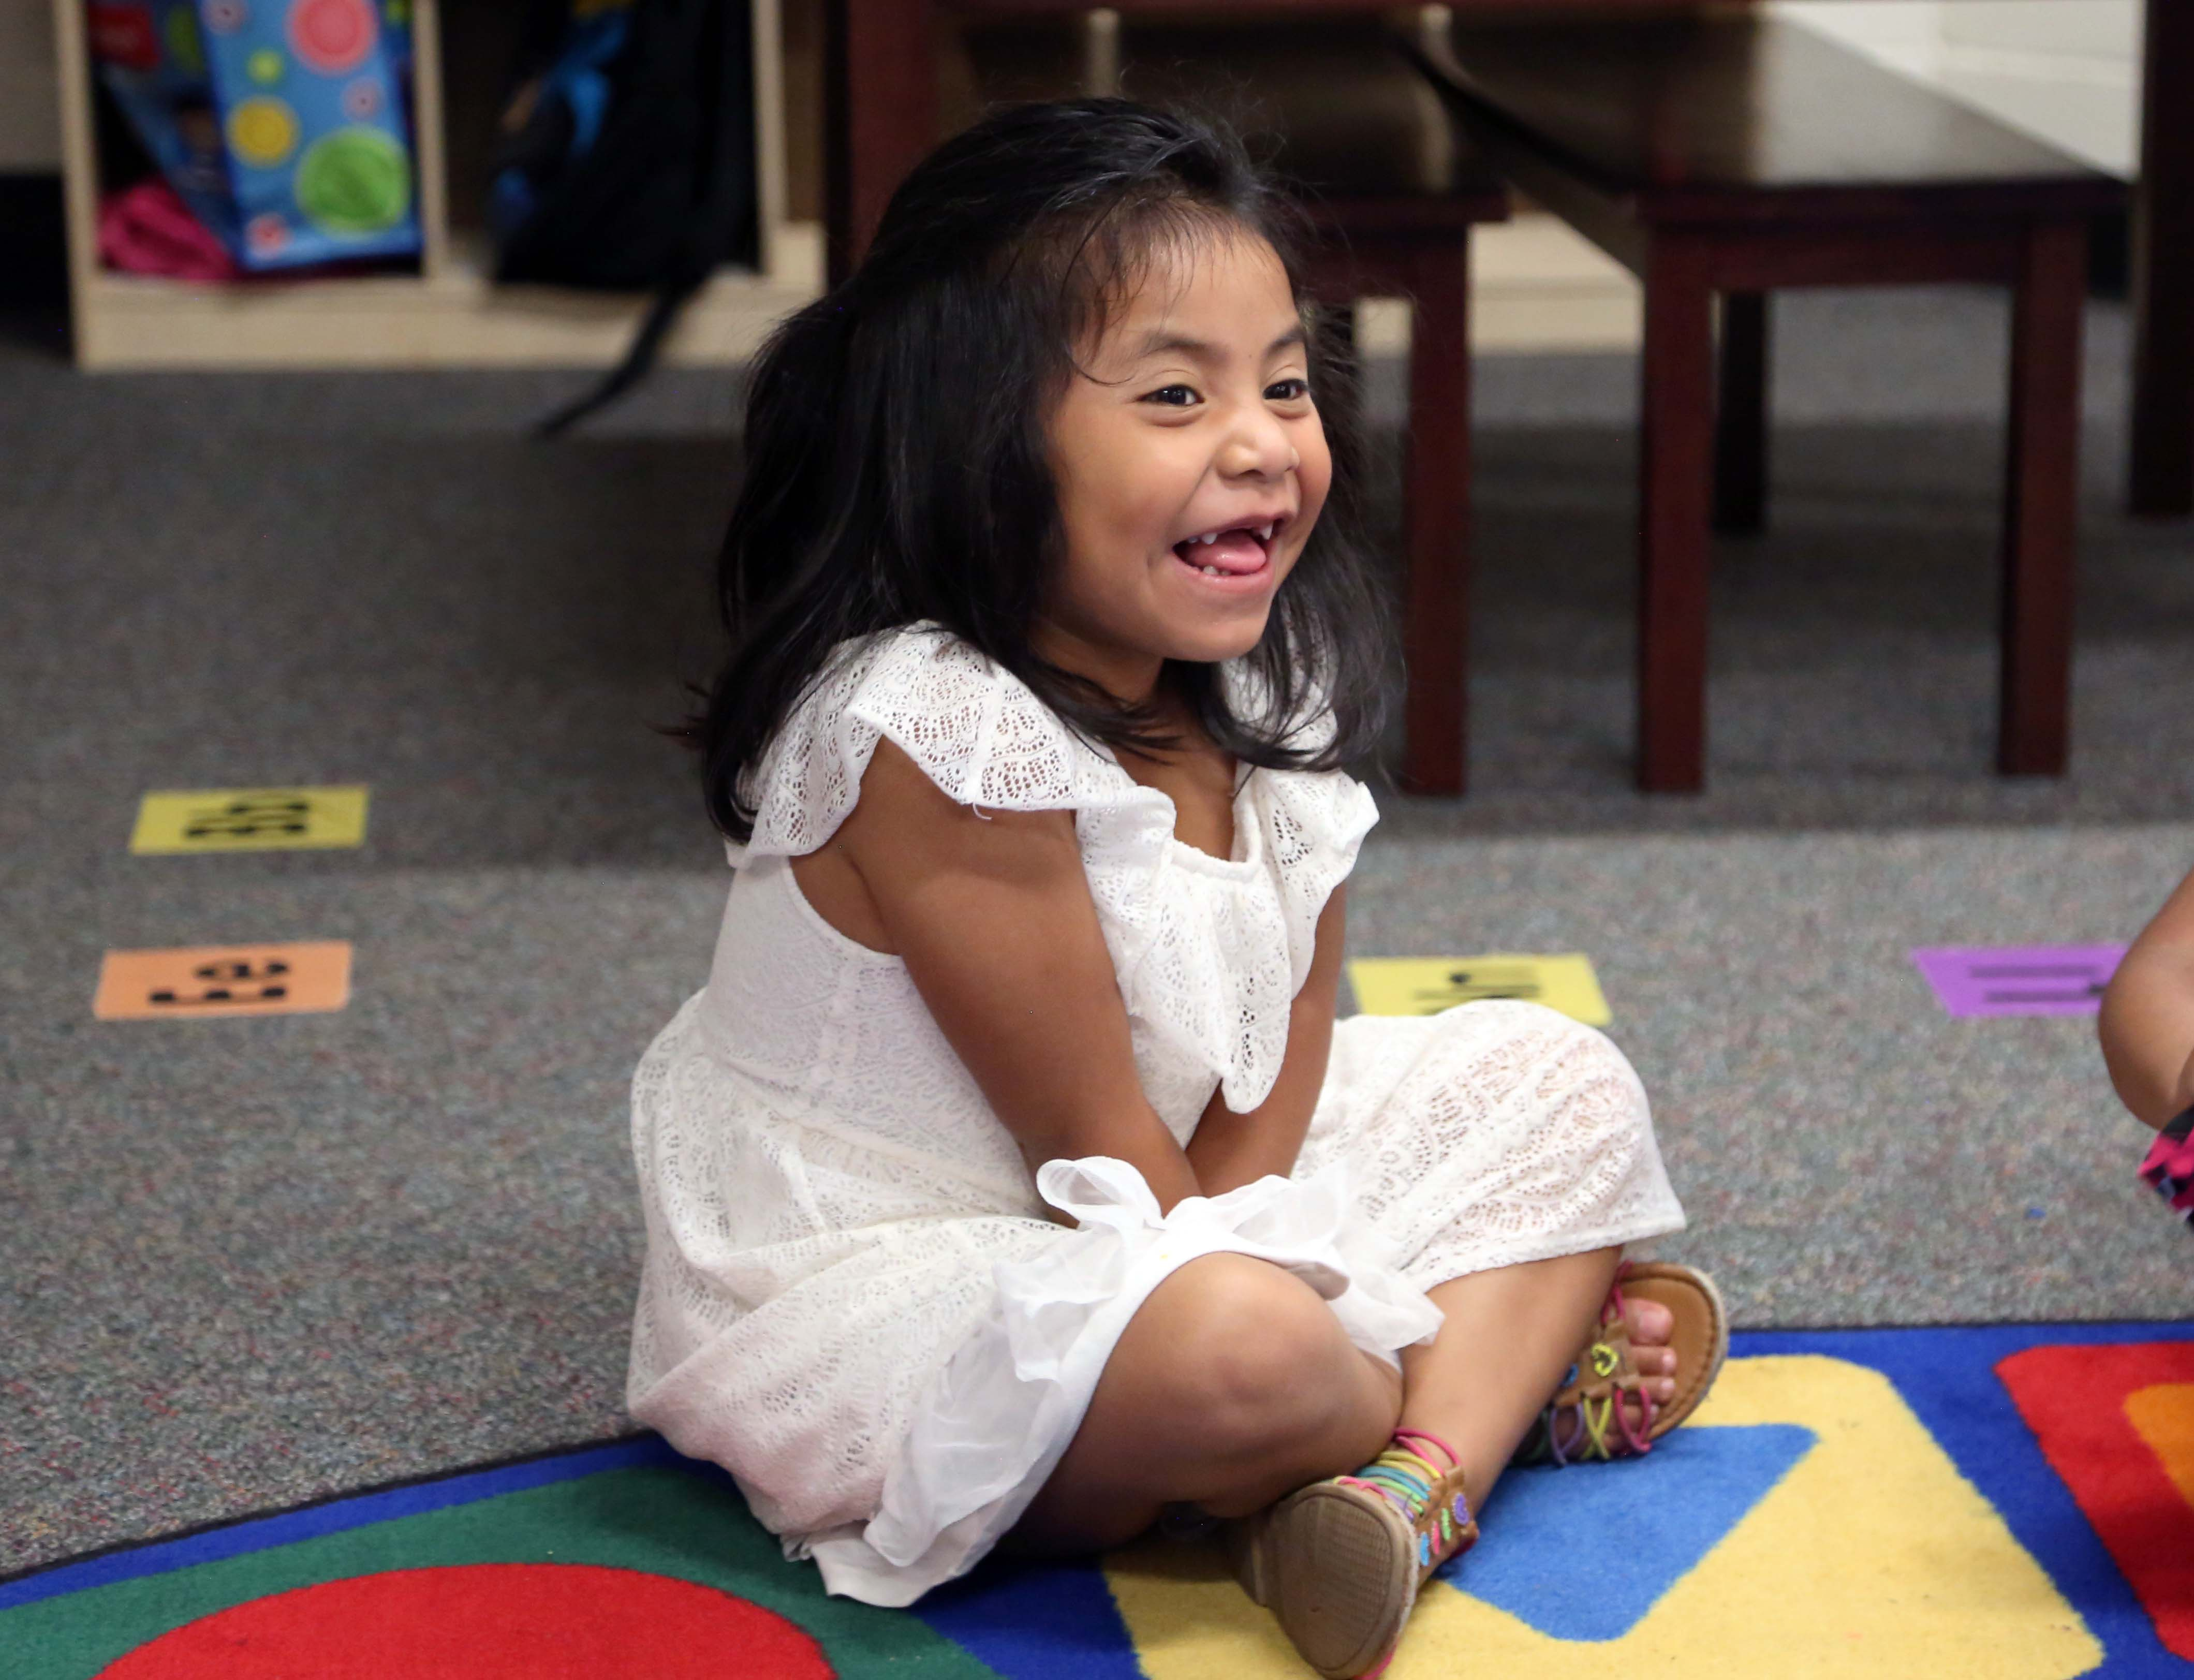 A preschool girl gives a gapped-tooth grin while sitting on the circle rug.